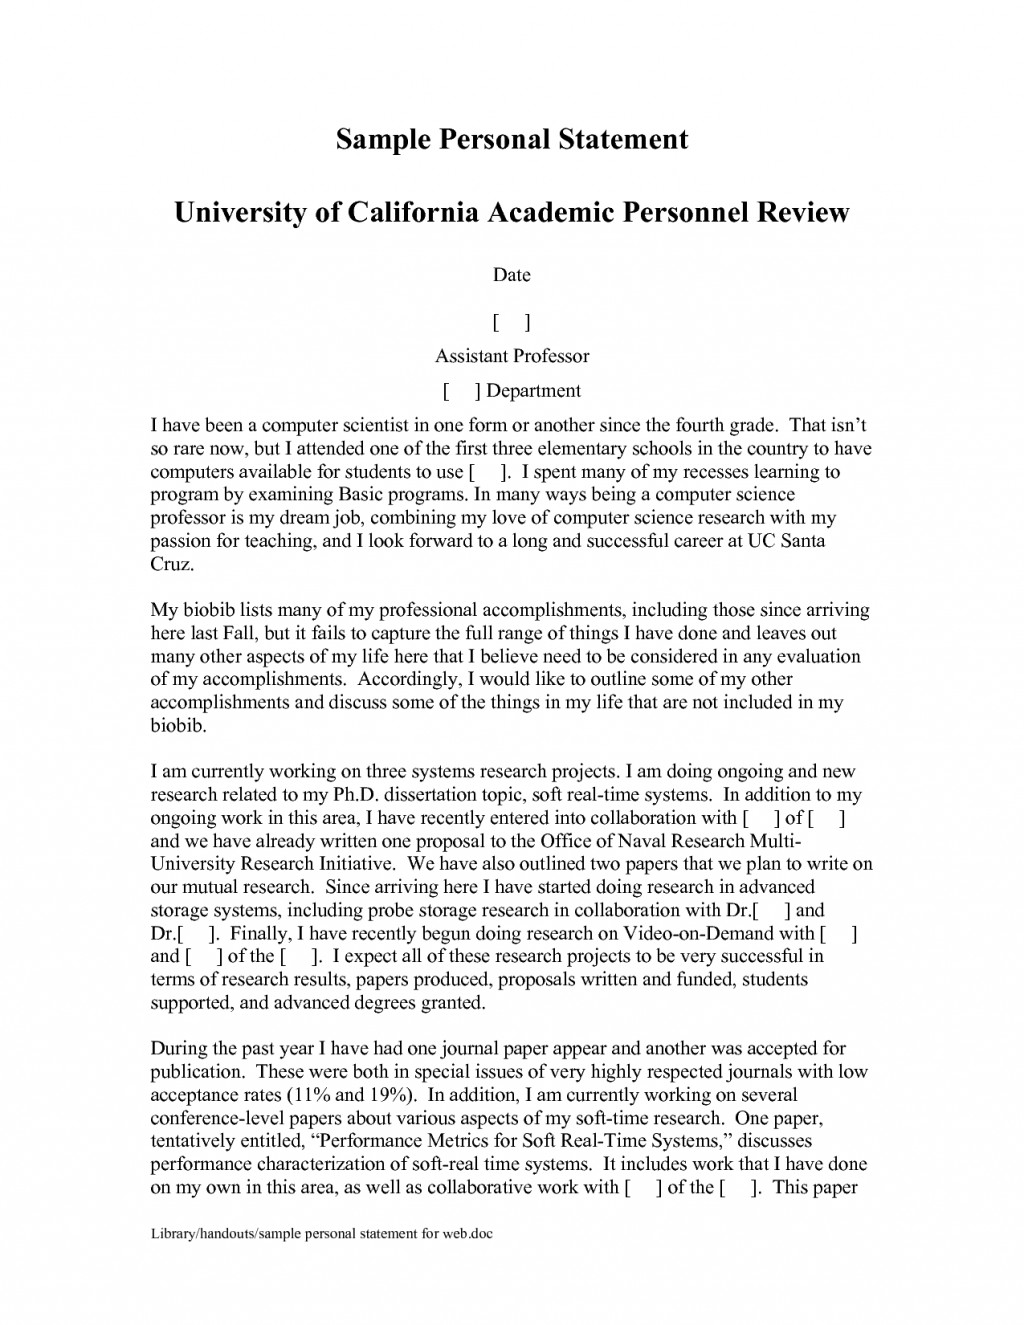 014 Essay Example Harvard Business School Examples Image Ideas Template Sample Essays Mba Entrance Writing Unit Graduate Personal Formidable Length Question 2018 Large